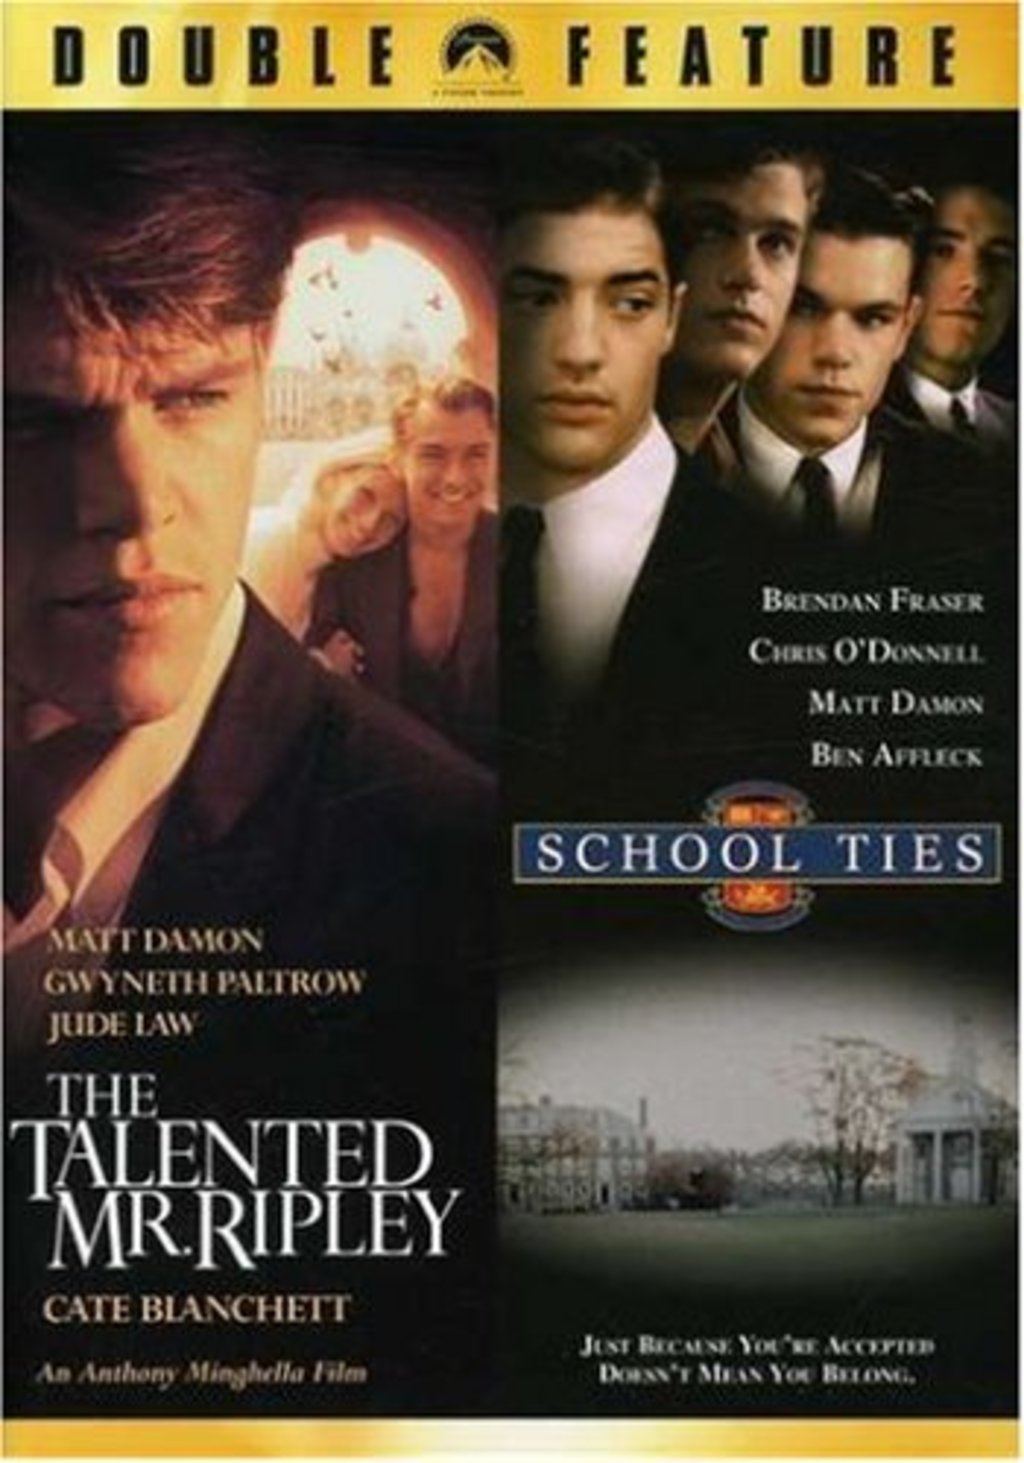 a review of the movie school ties School ties directed by: robert mandel starring: chris o'donnell, matt damon, brendan fraser genres: drama, coming-of-age rated the #175 best film of 1992.